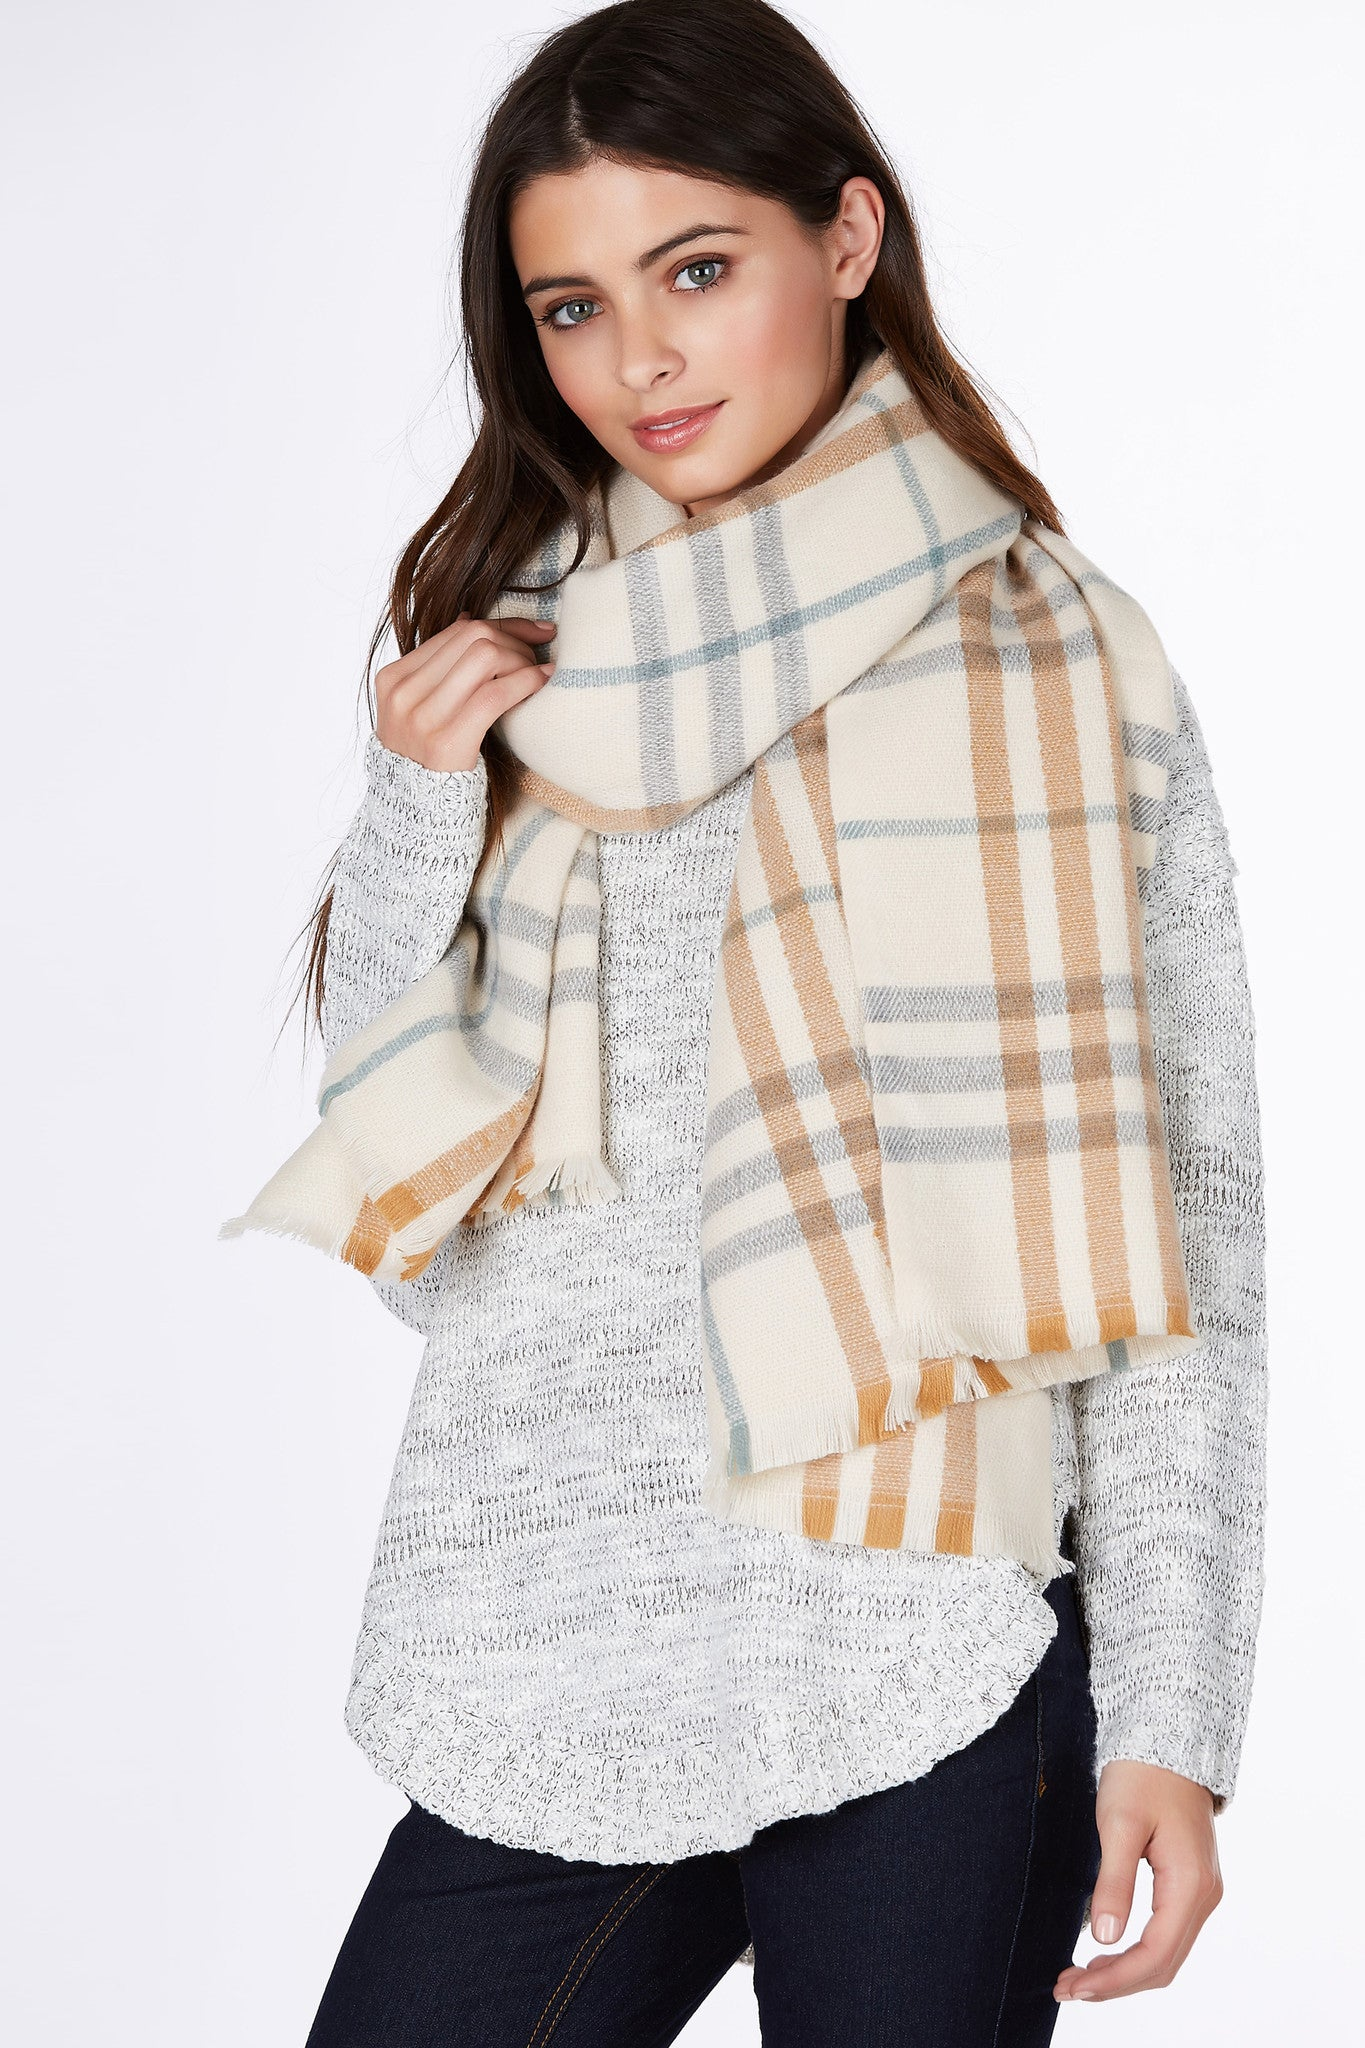 A soft oversized scarf with classic plaid pattern throughout. Delicate pastel color scheme brings a preppy vibe. Style with a basic outfit with a white tee and denim jeans.